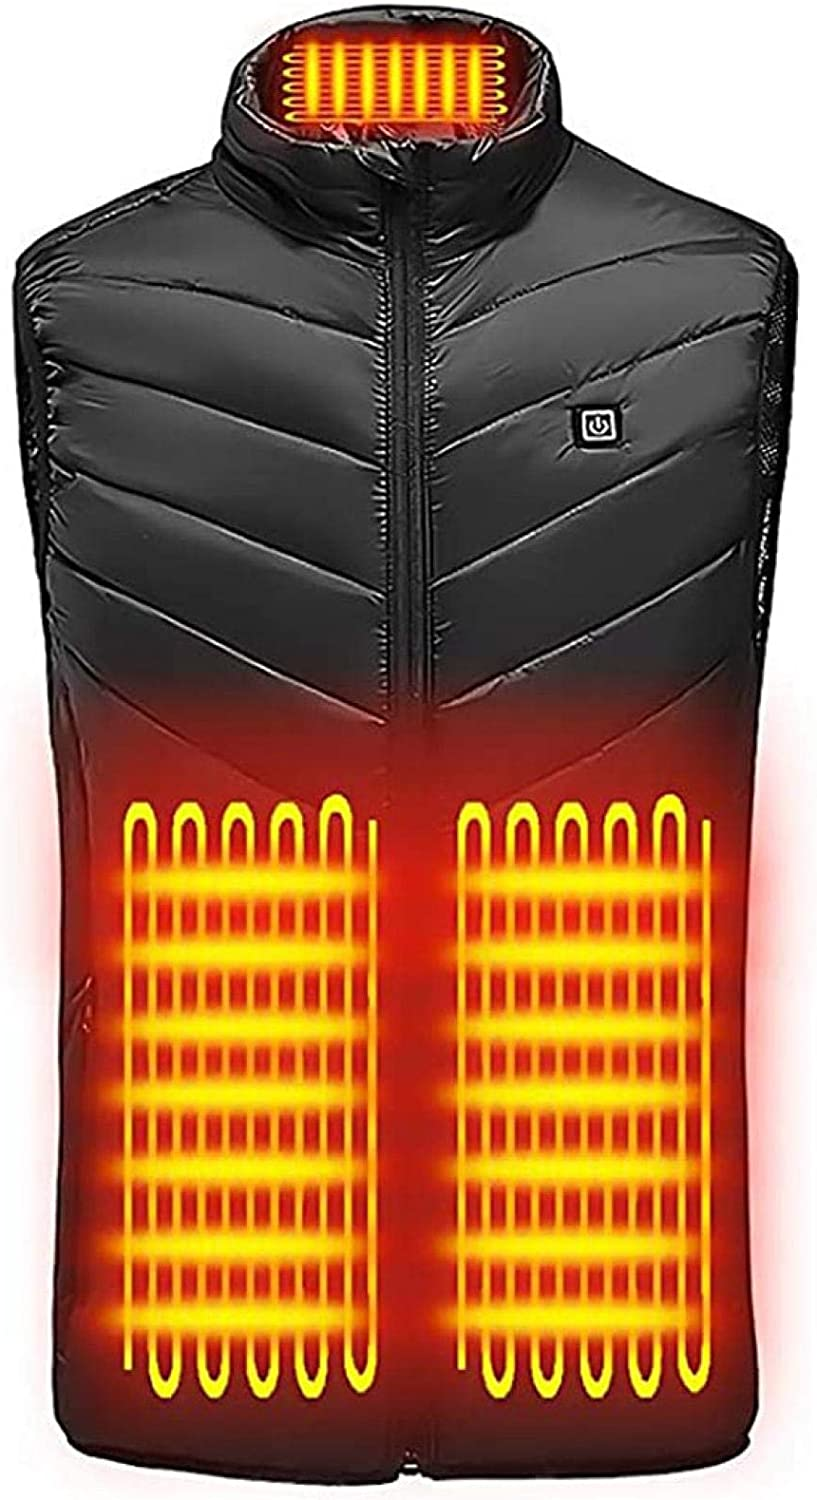 5V Heated Vest USB Charging Body Cheap mail order shopping Clo Same day shipping Warmer Electric Lightweight